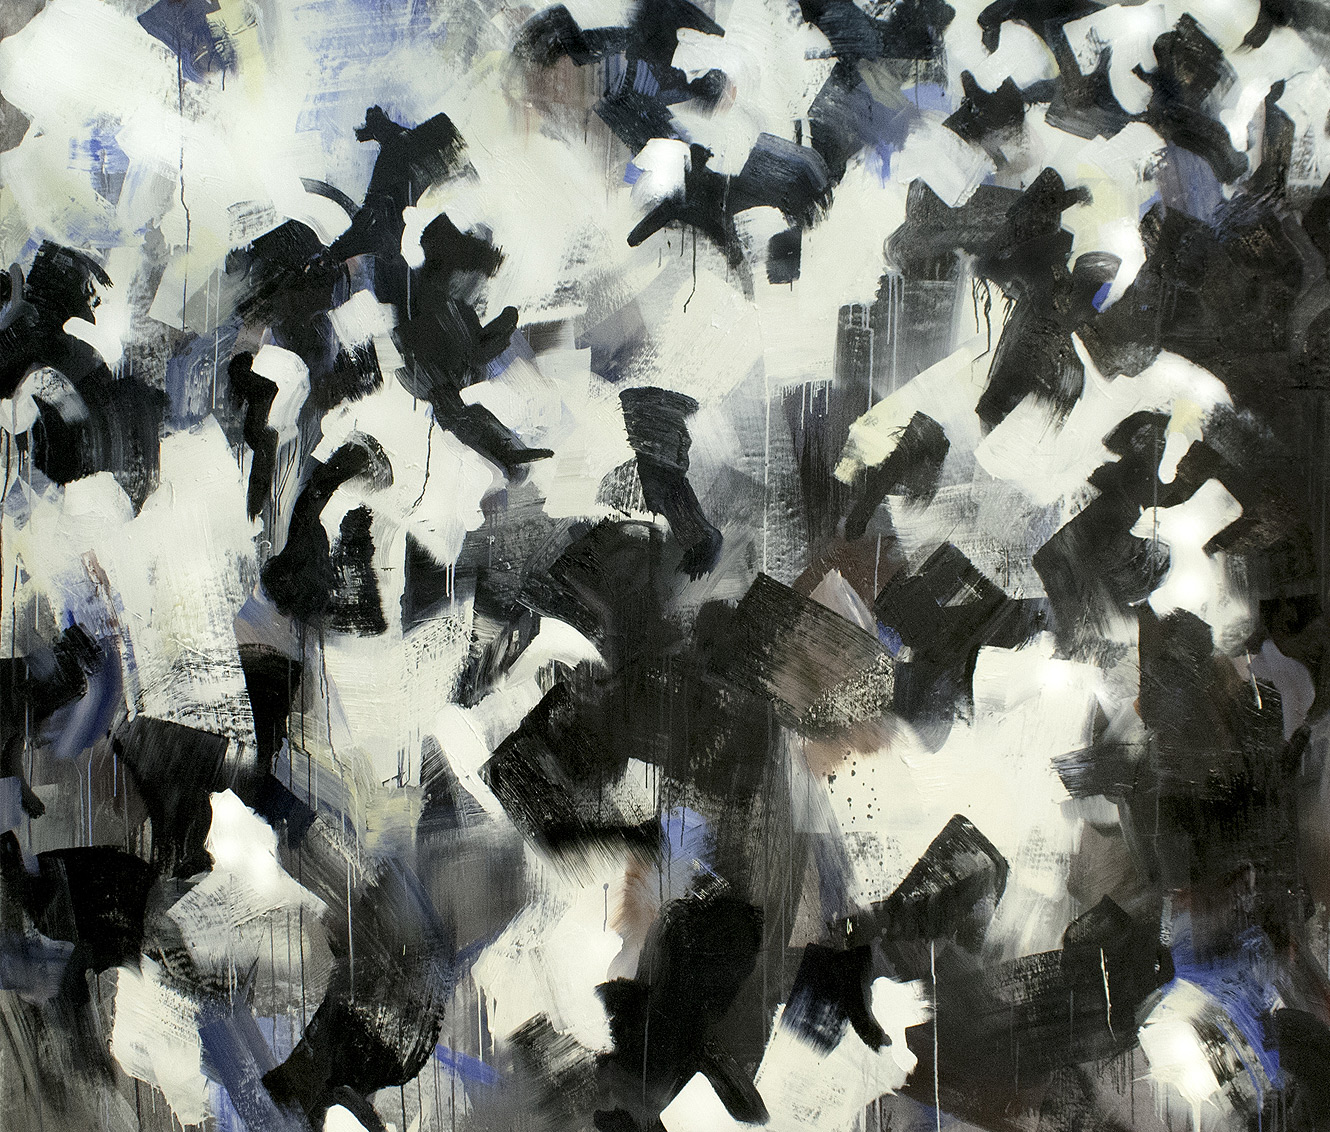 Brut #5 Oil on Canvas • 205 x 255 cm • 2014